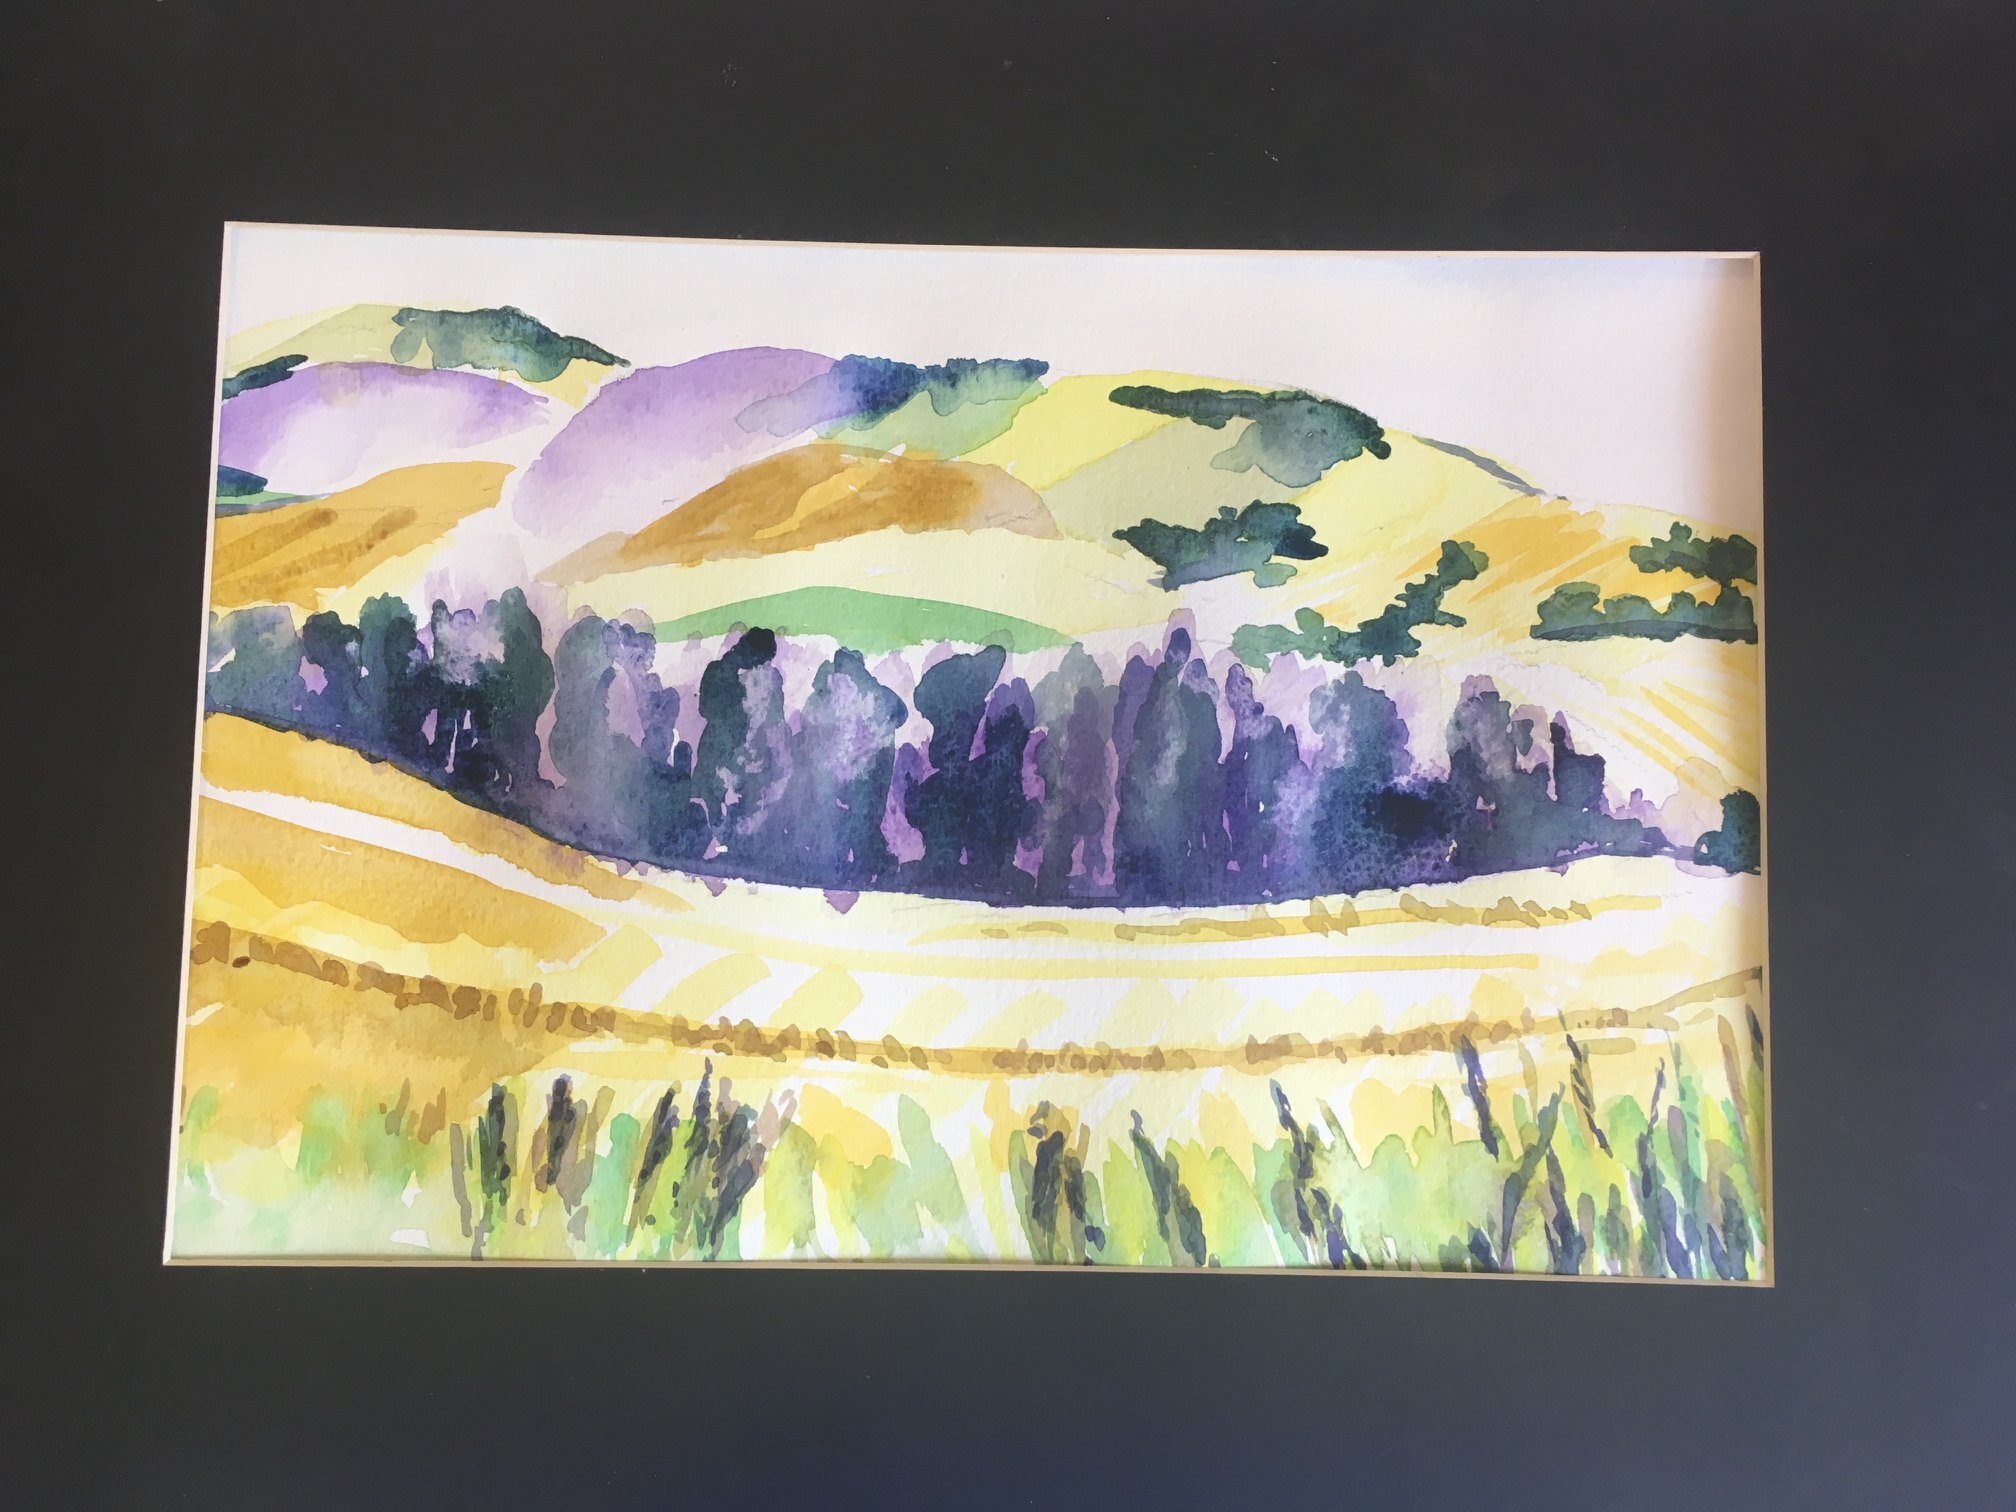 Lincolnshire Wolds painted in water colour, one of the most amazing views we found the other week while out and about exploring - Emma Yardley